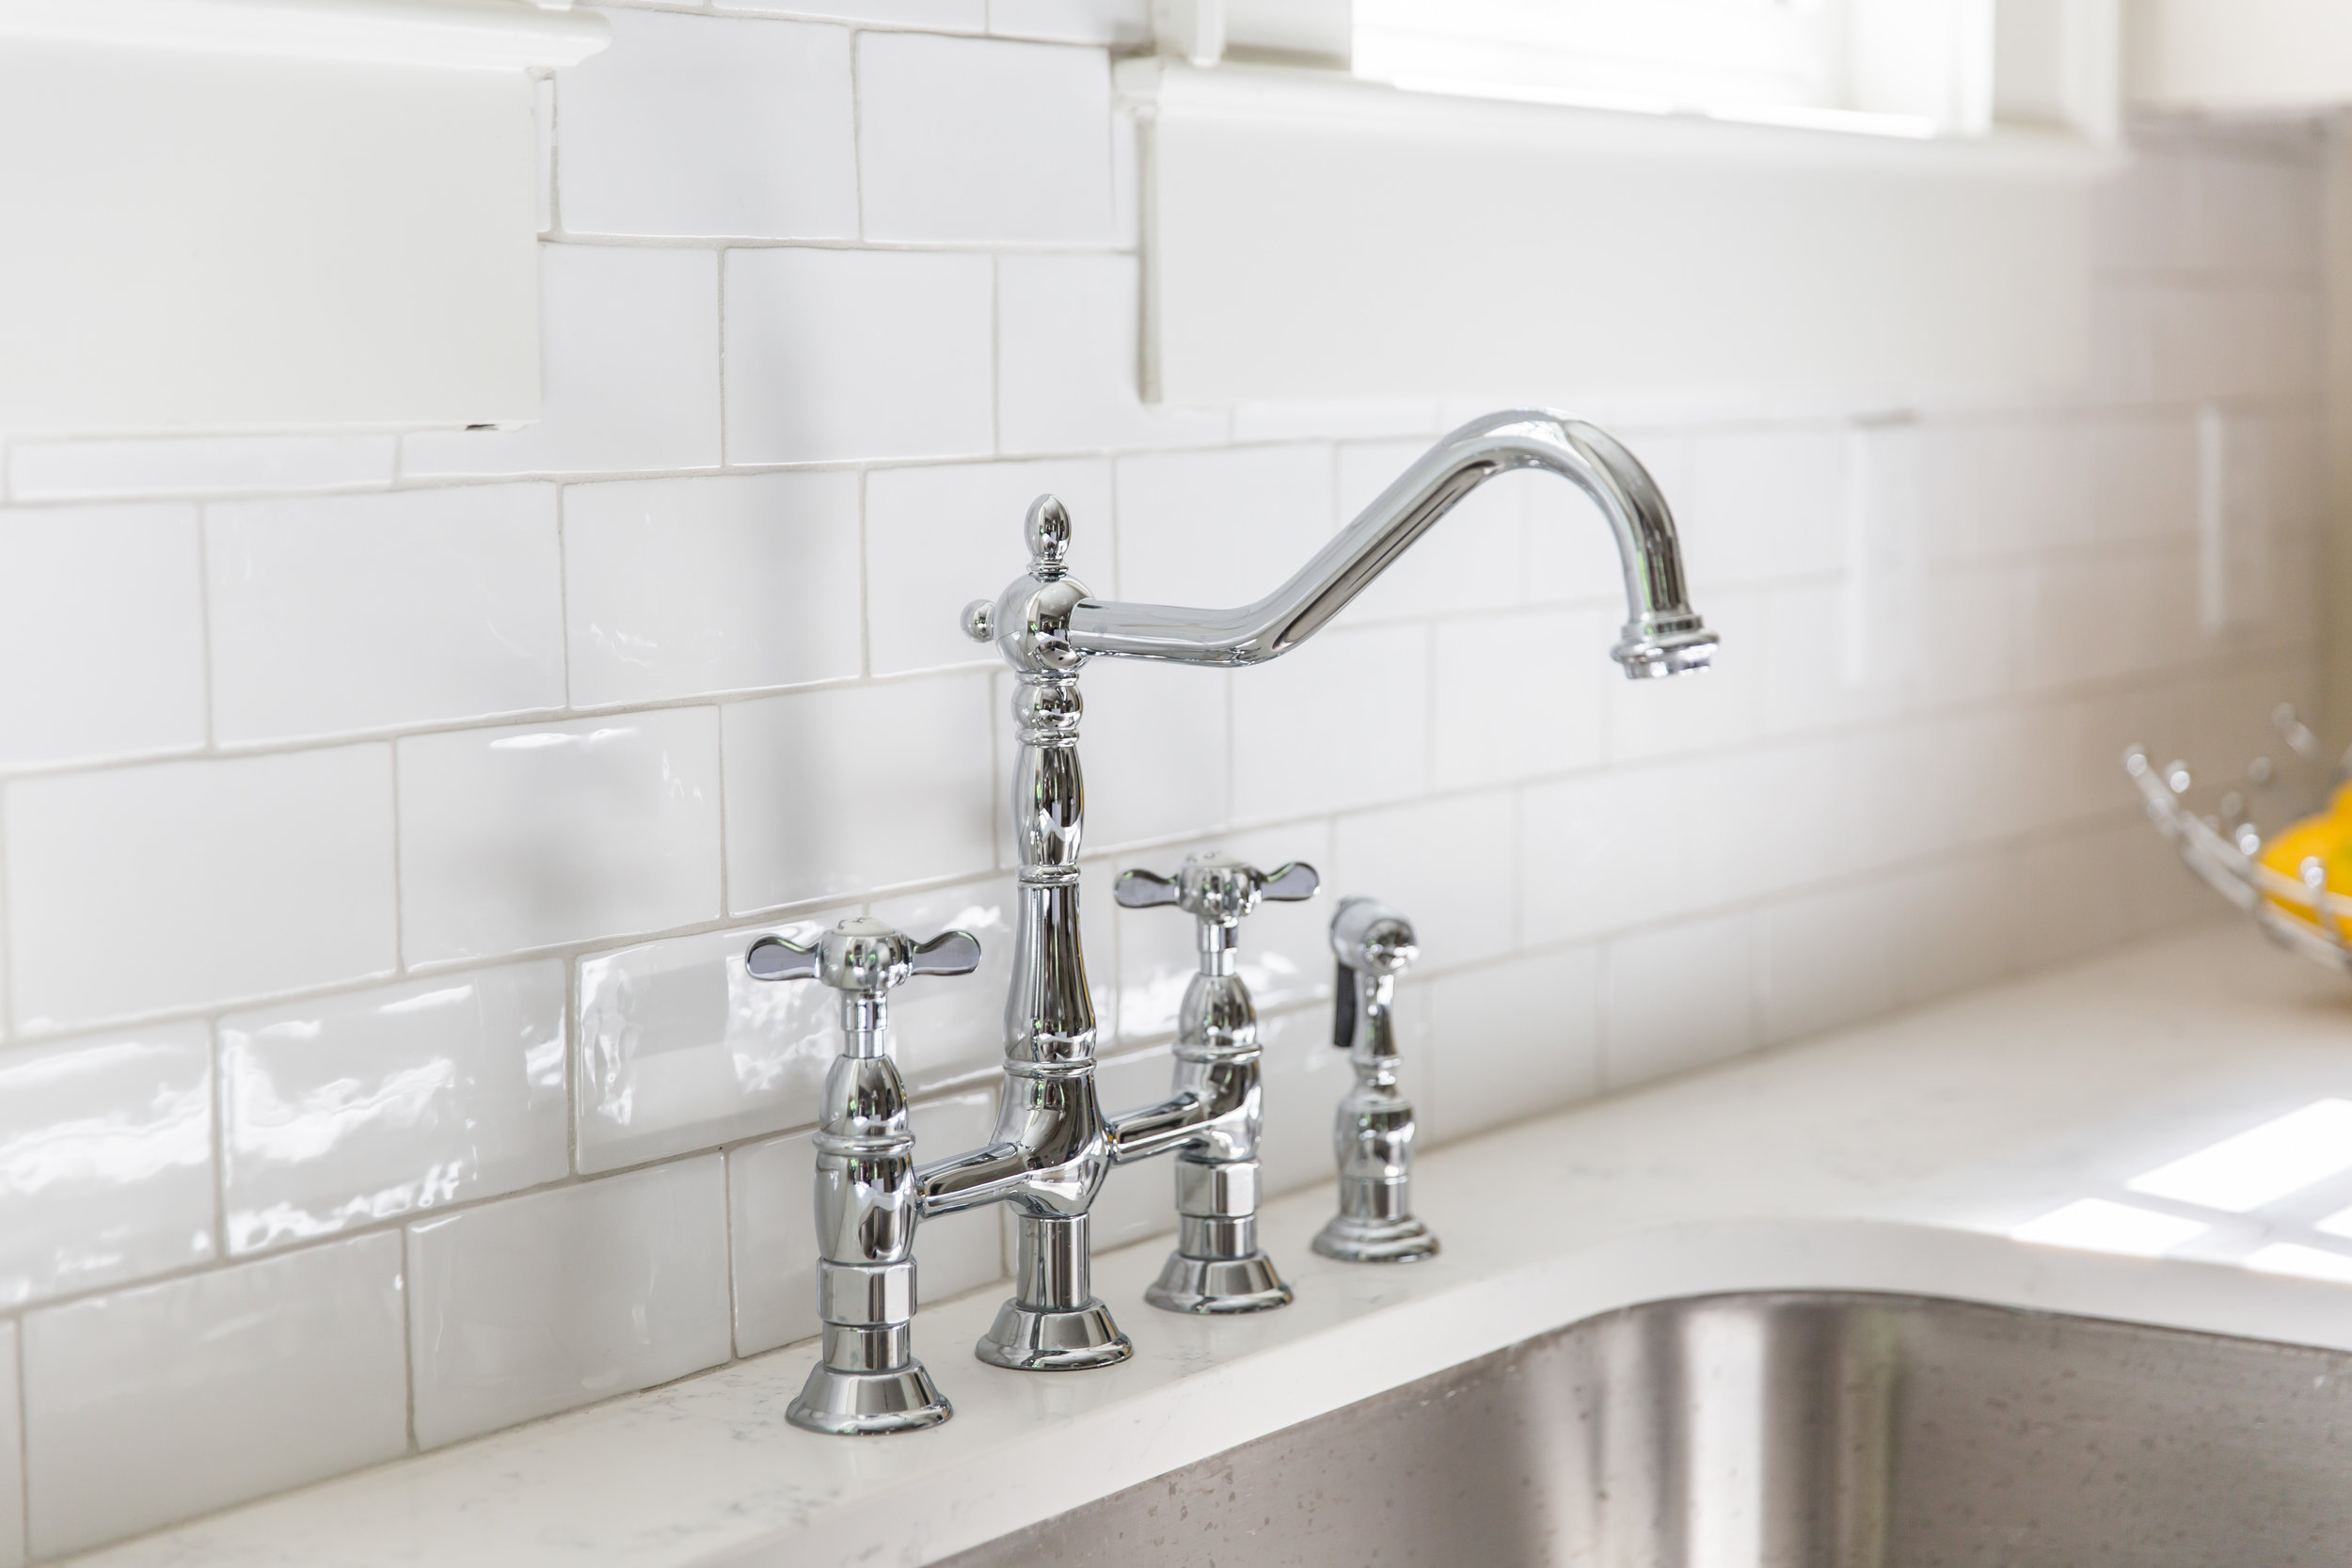 640 E Morningside-Kitchen Faucet.jpg